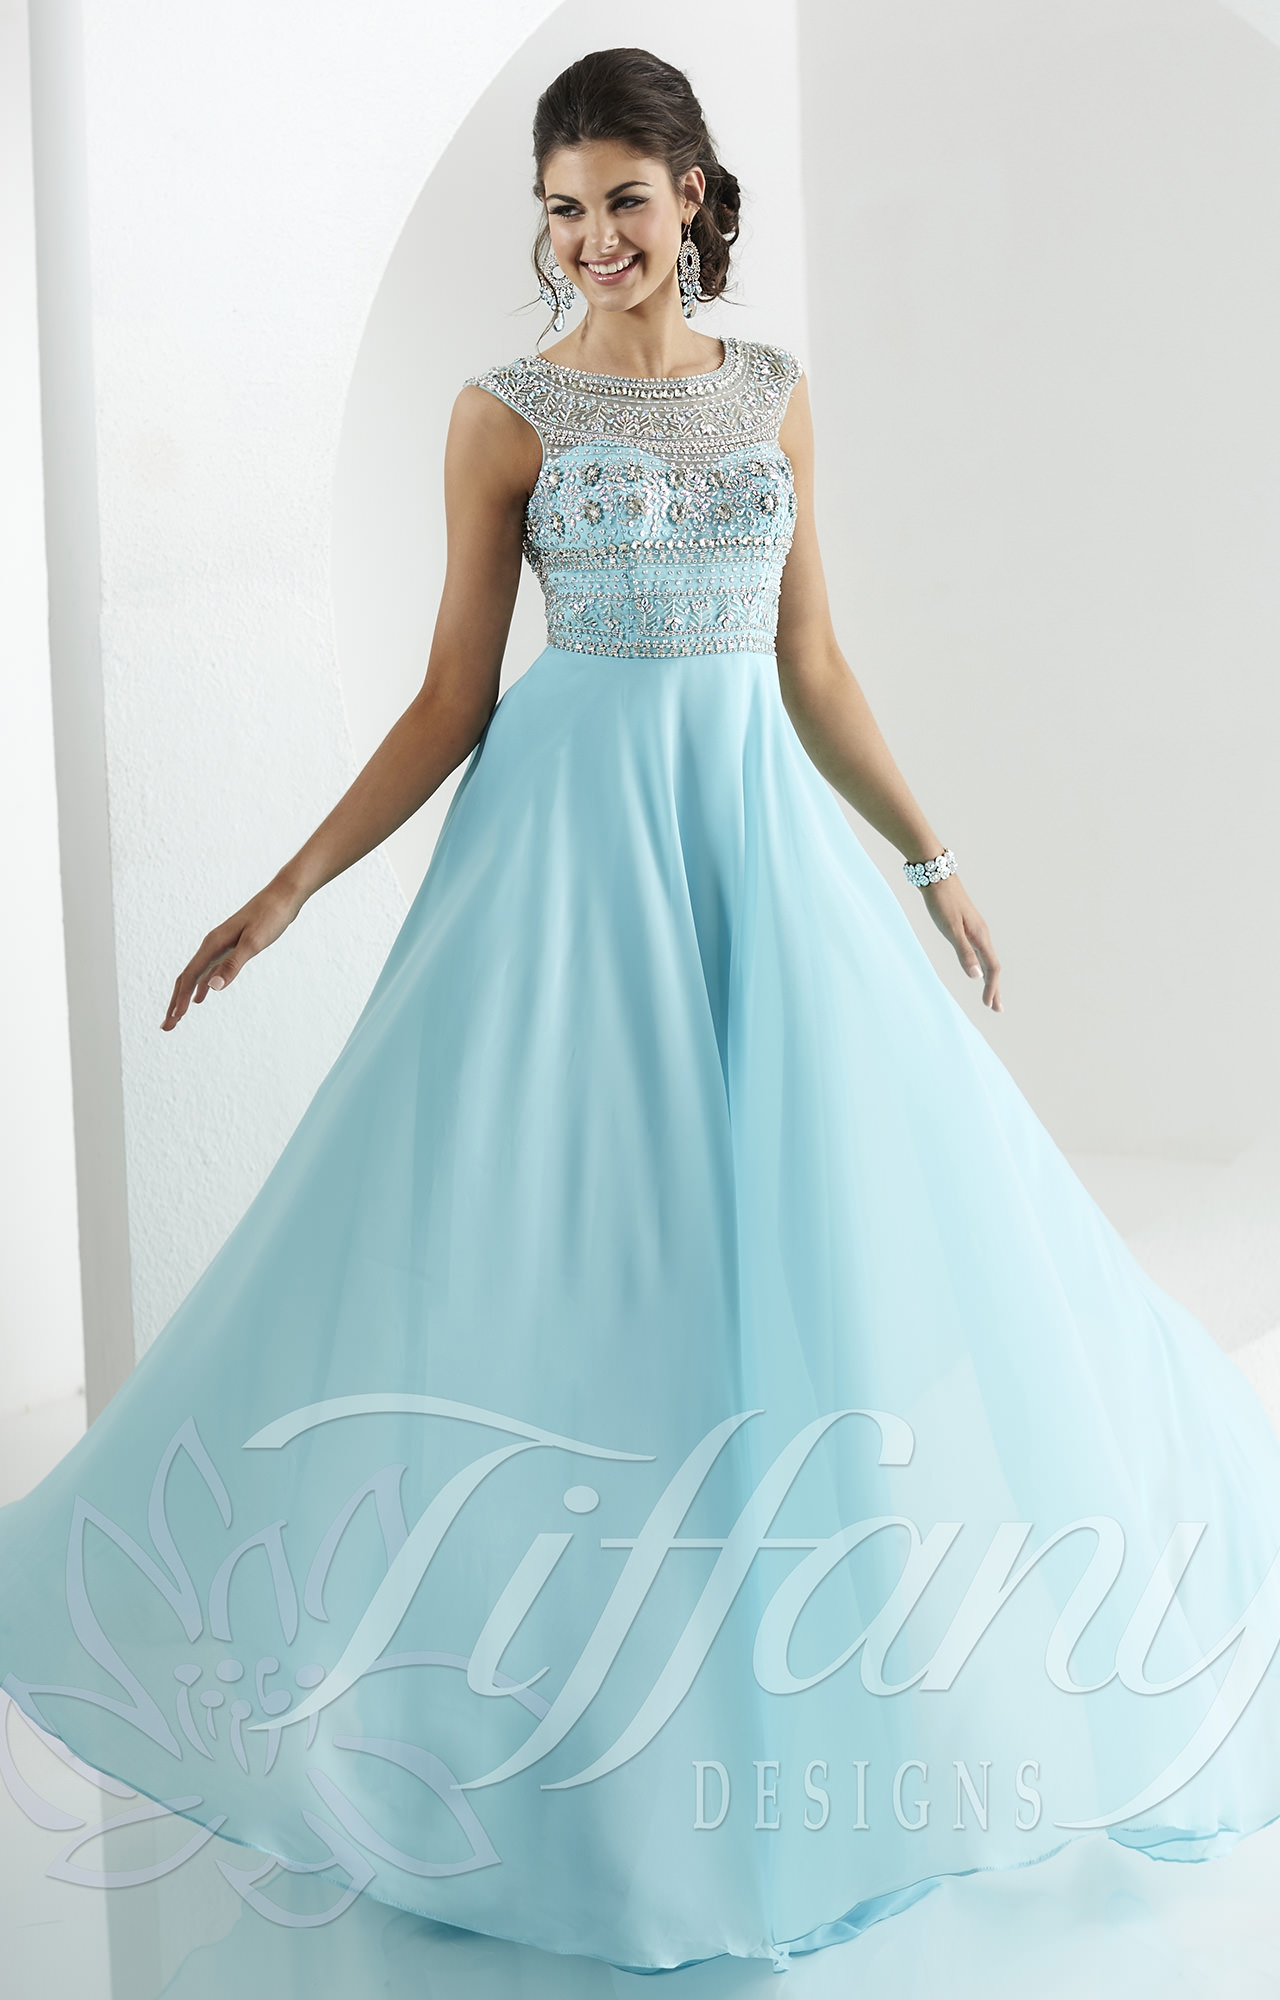 Perfect Disney Belle Prom Dress Image Collection - All Wedding ...